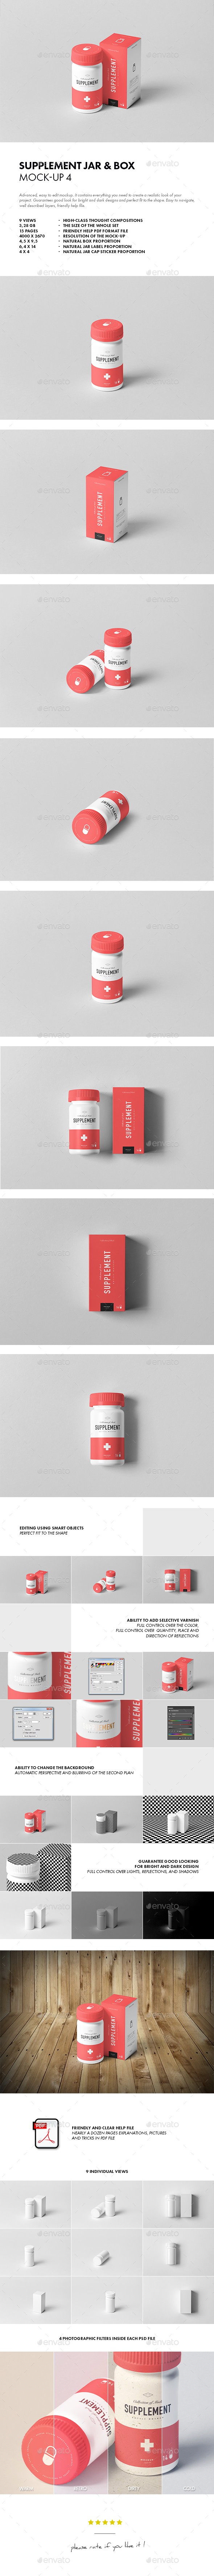 Supplement Jar & Box Mock-Up 4 - Miscellaneous Packaging